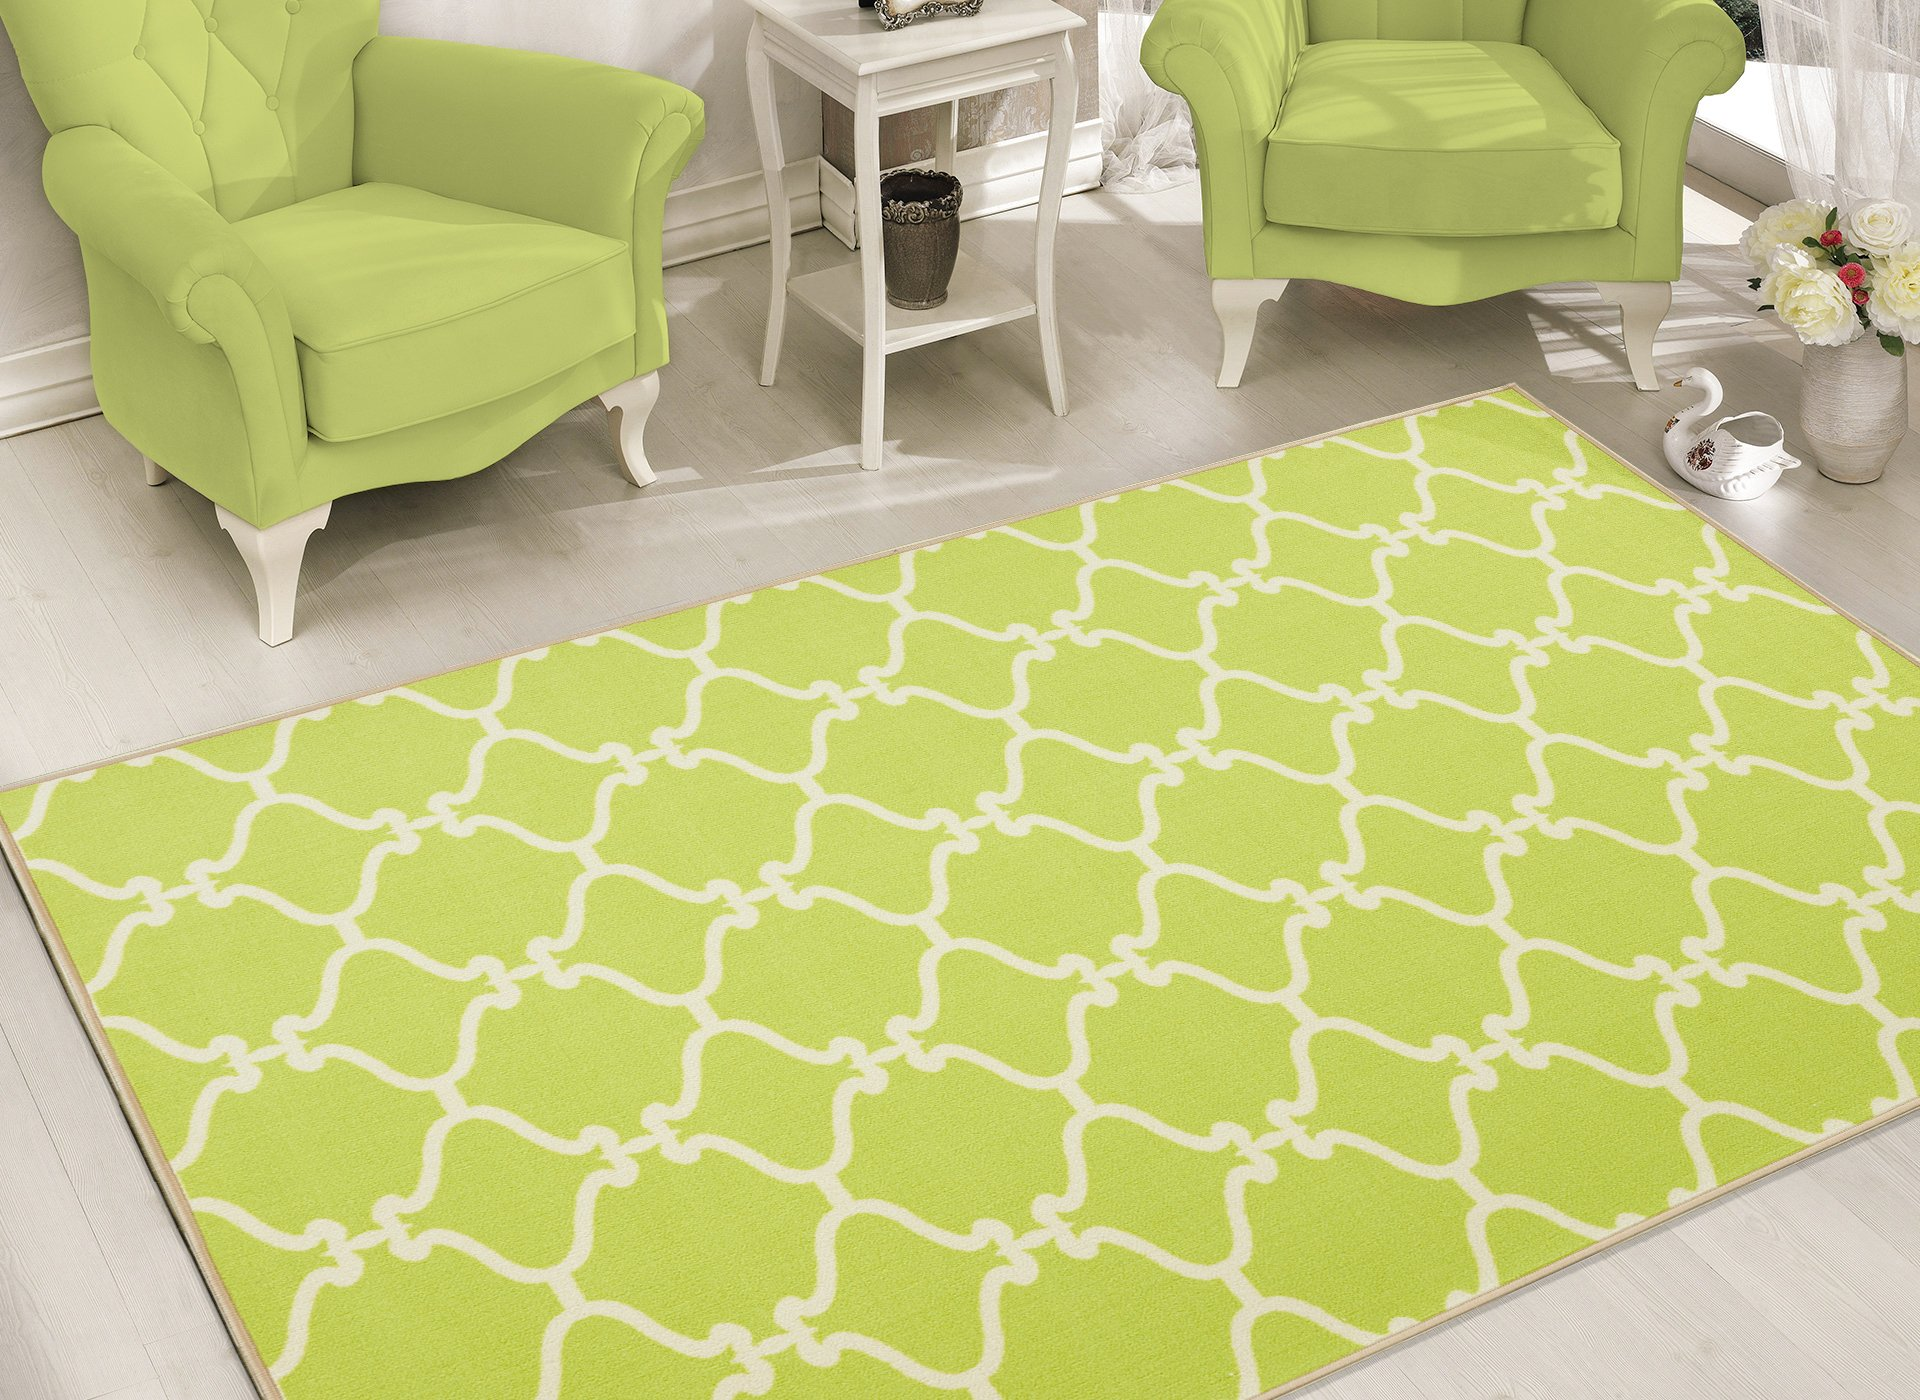 Sweet Home Stores Clifton Collection Moroccan Trellis Design Area Rug, Green by Sweet Home Stores